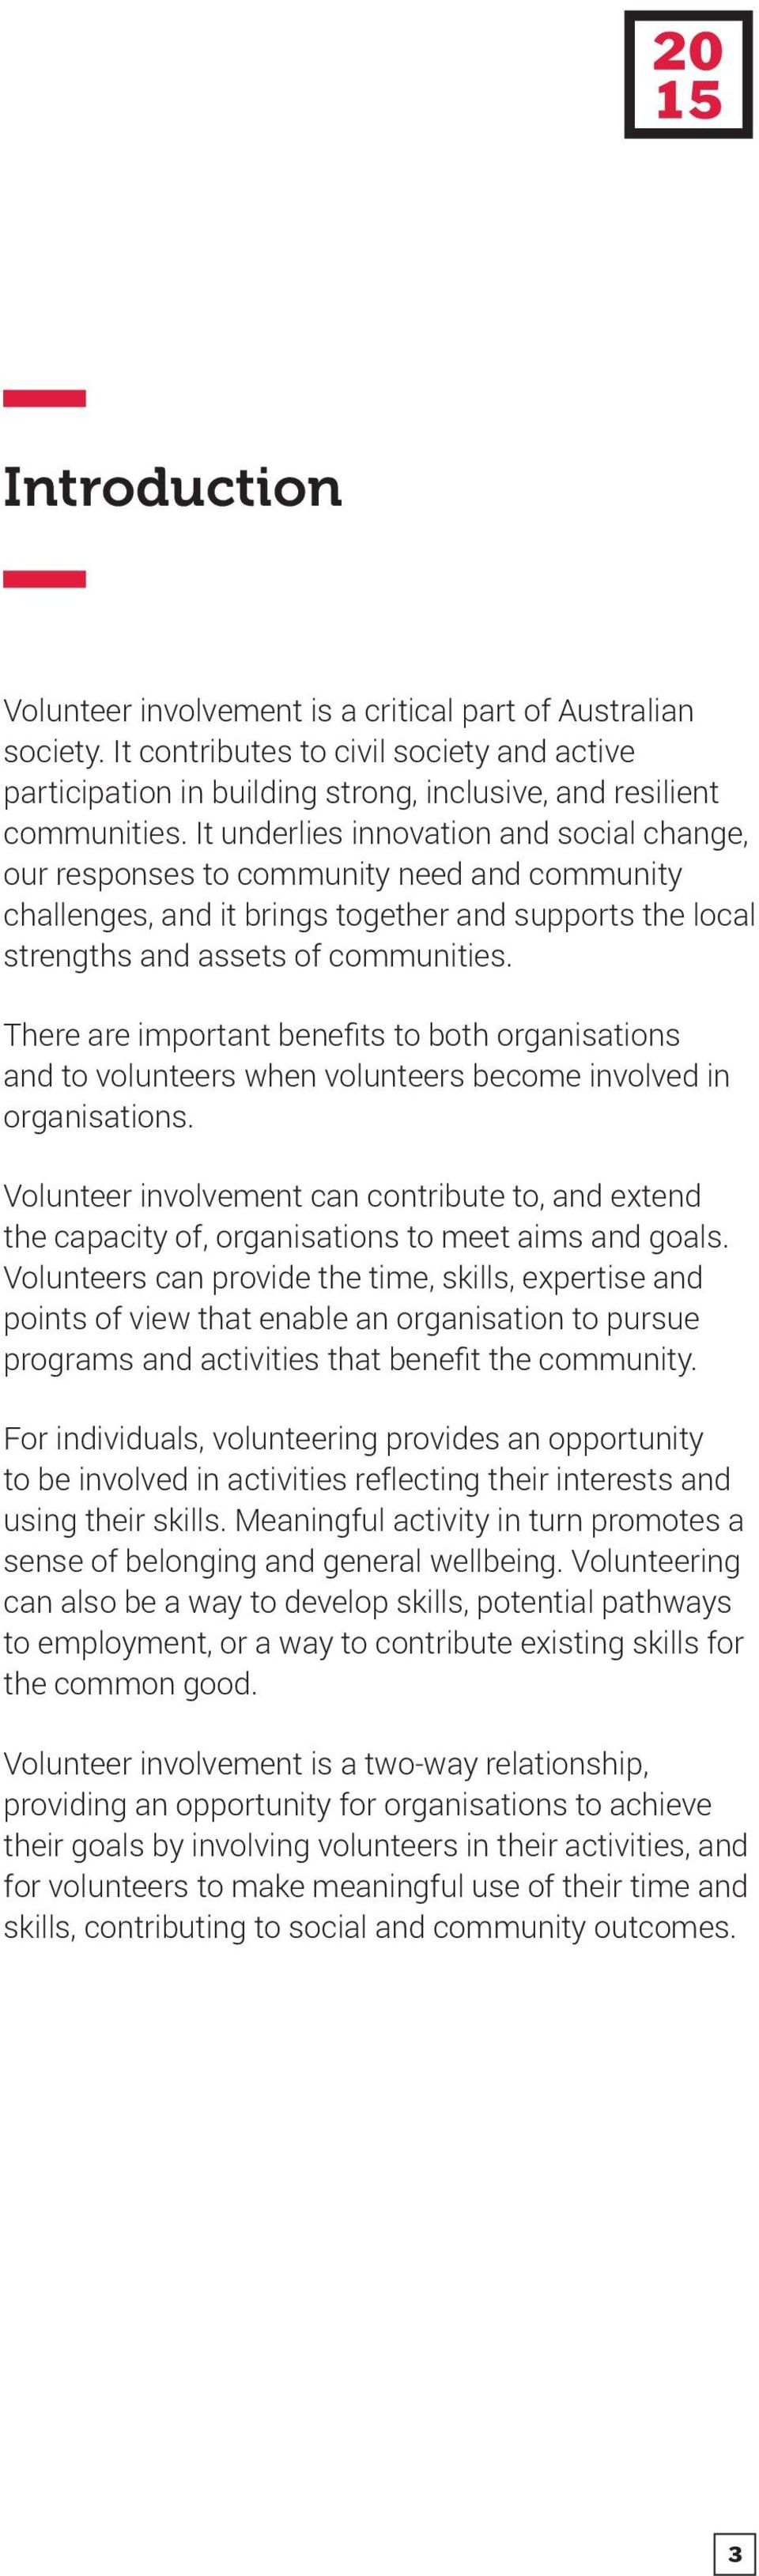 There are important benefits to both organisations and to volunteers when volunteers become involved in organisations.